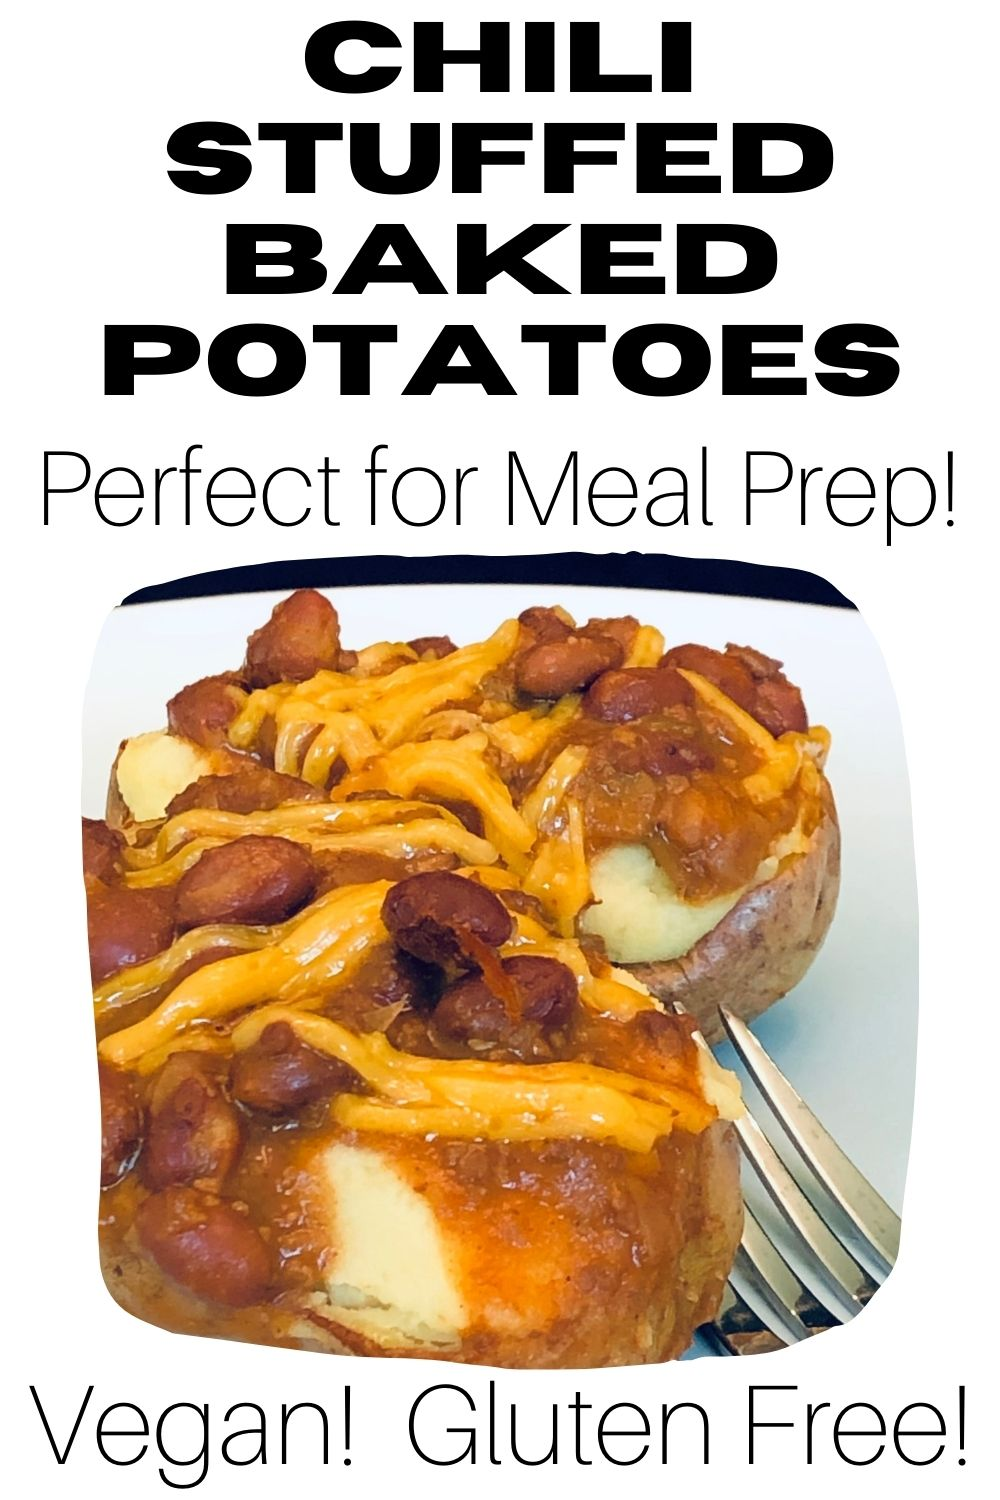 Gluten Free Chili Stuffed Potatoes on a white plate with fork.